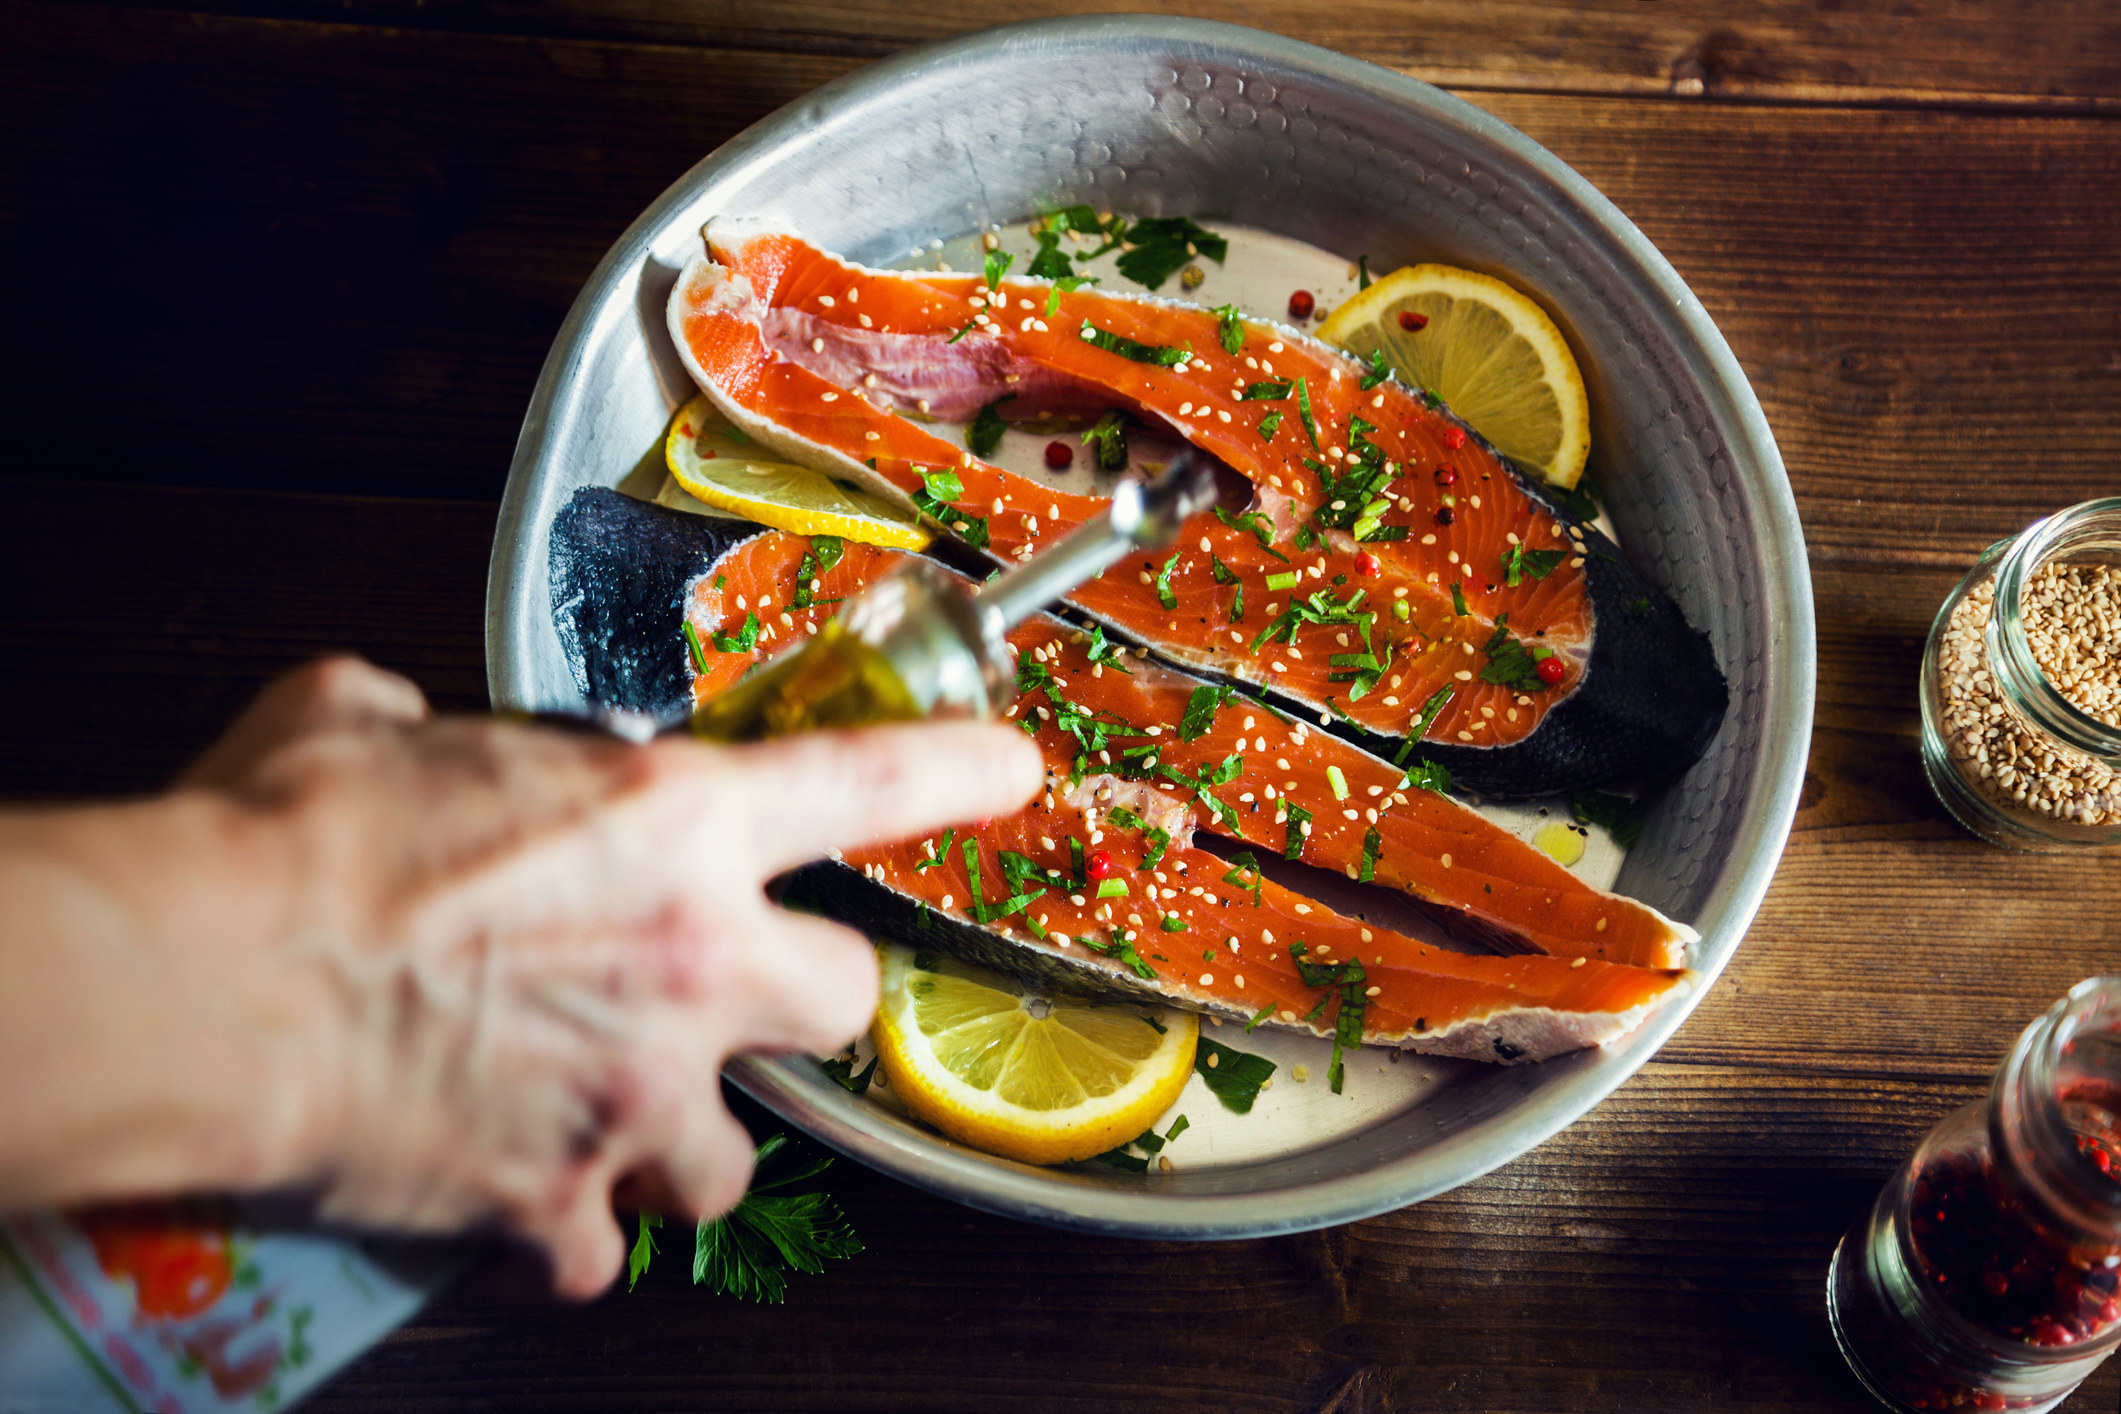 Seasoning salmon with olive oil.